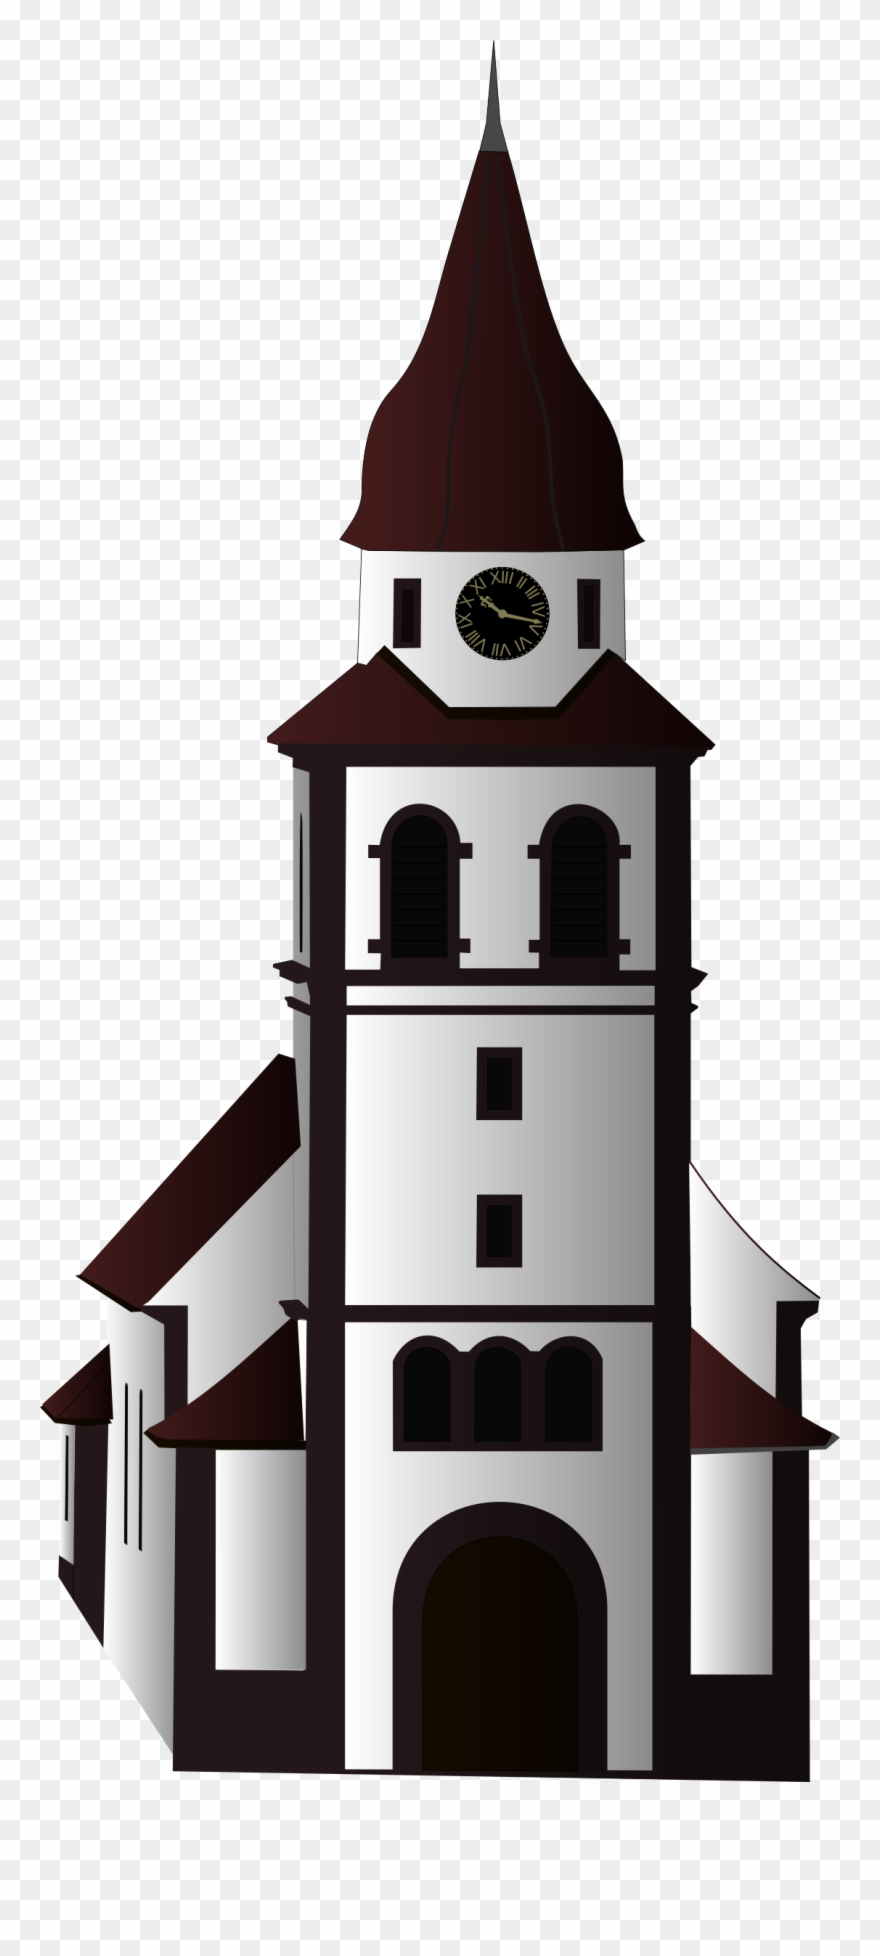 hight resolution of clock clipart church thank you for church musician card png download